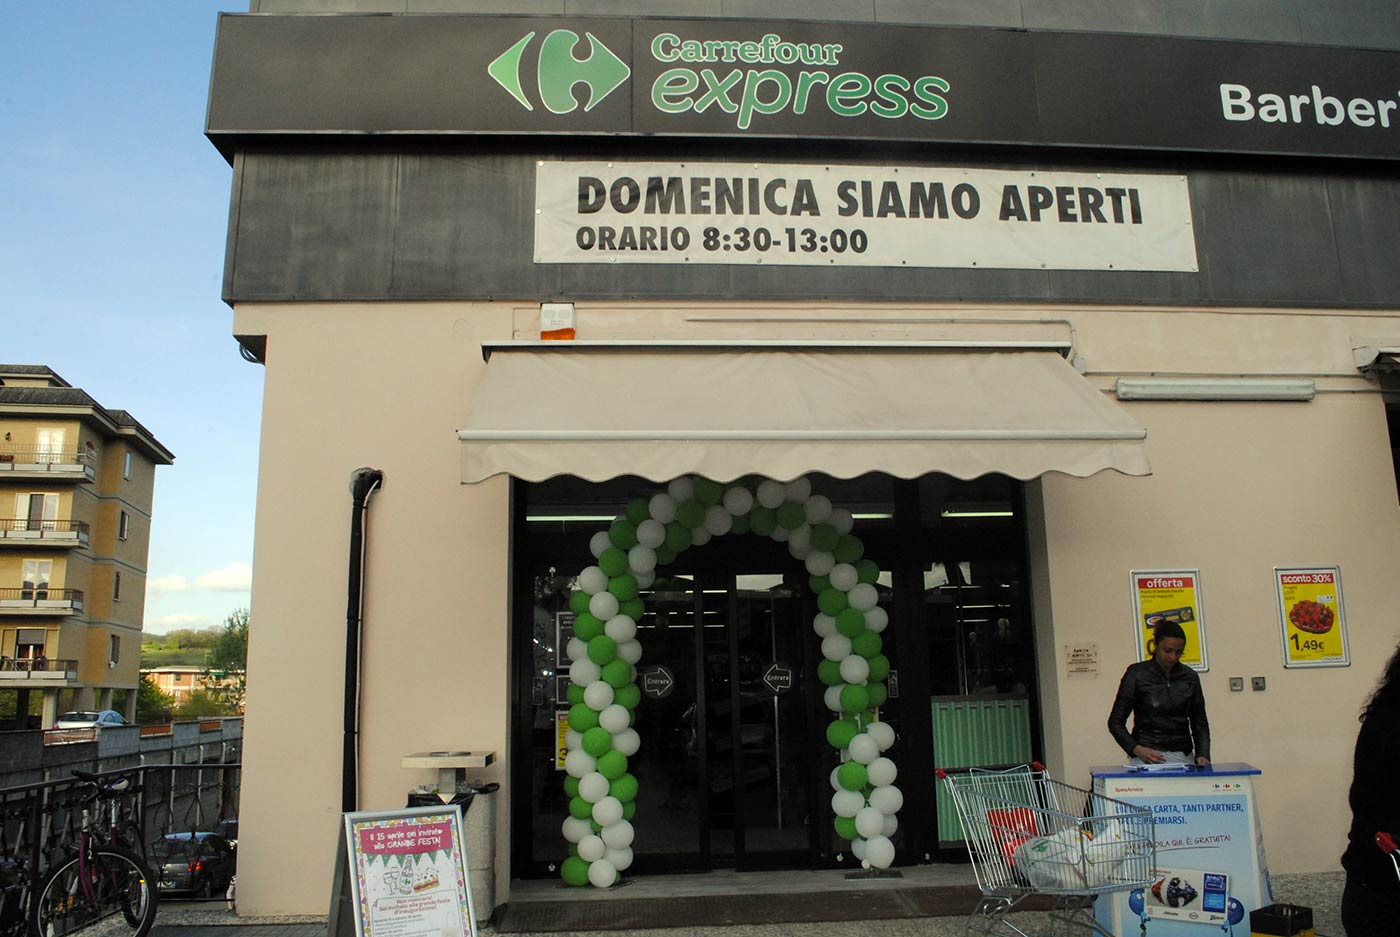 Carrefour Express a Barberino